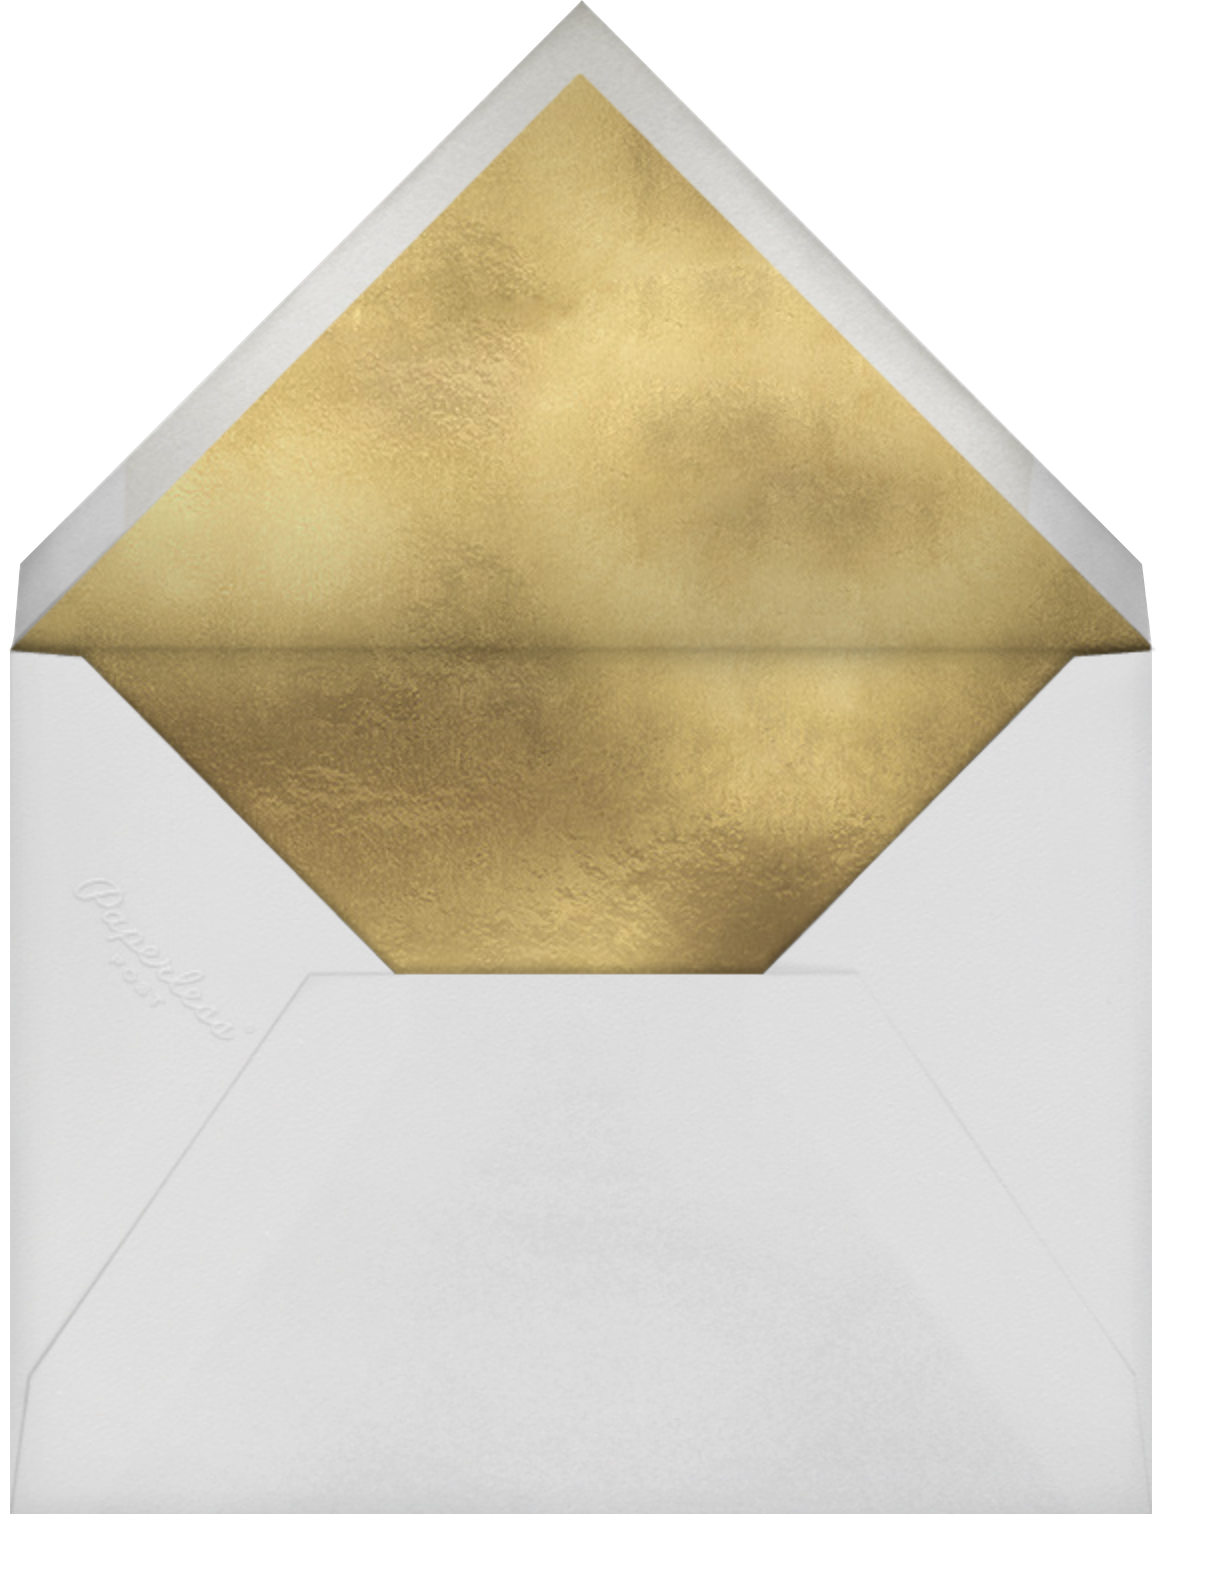 Neve - White - Kelly Wearstler - Christmas party - envelope back